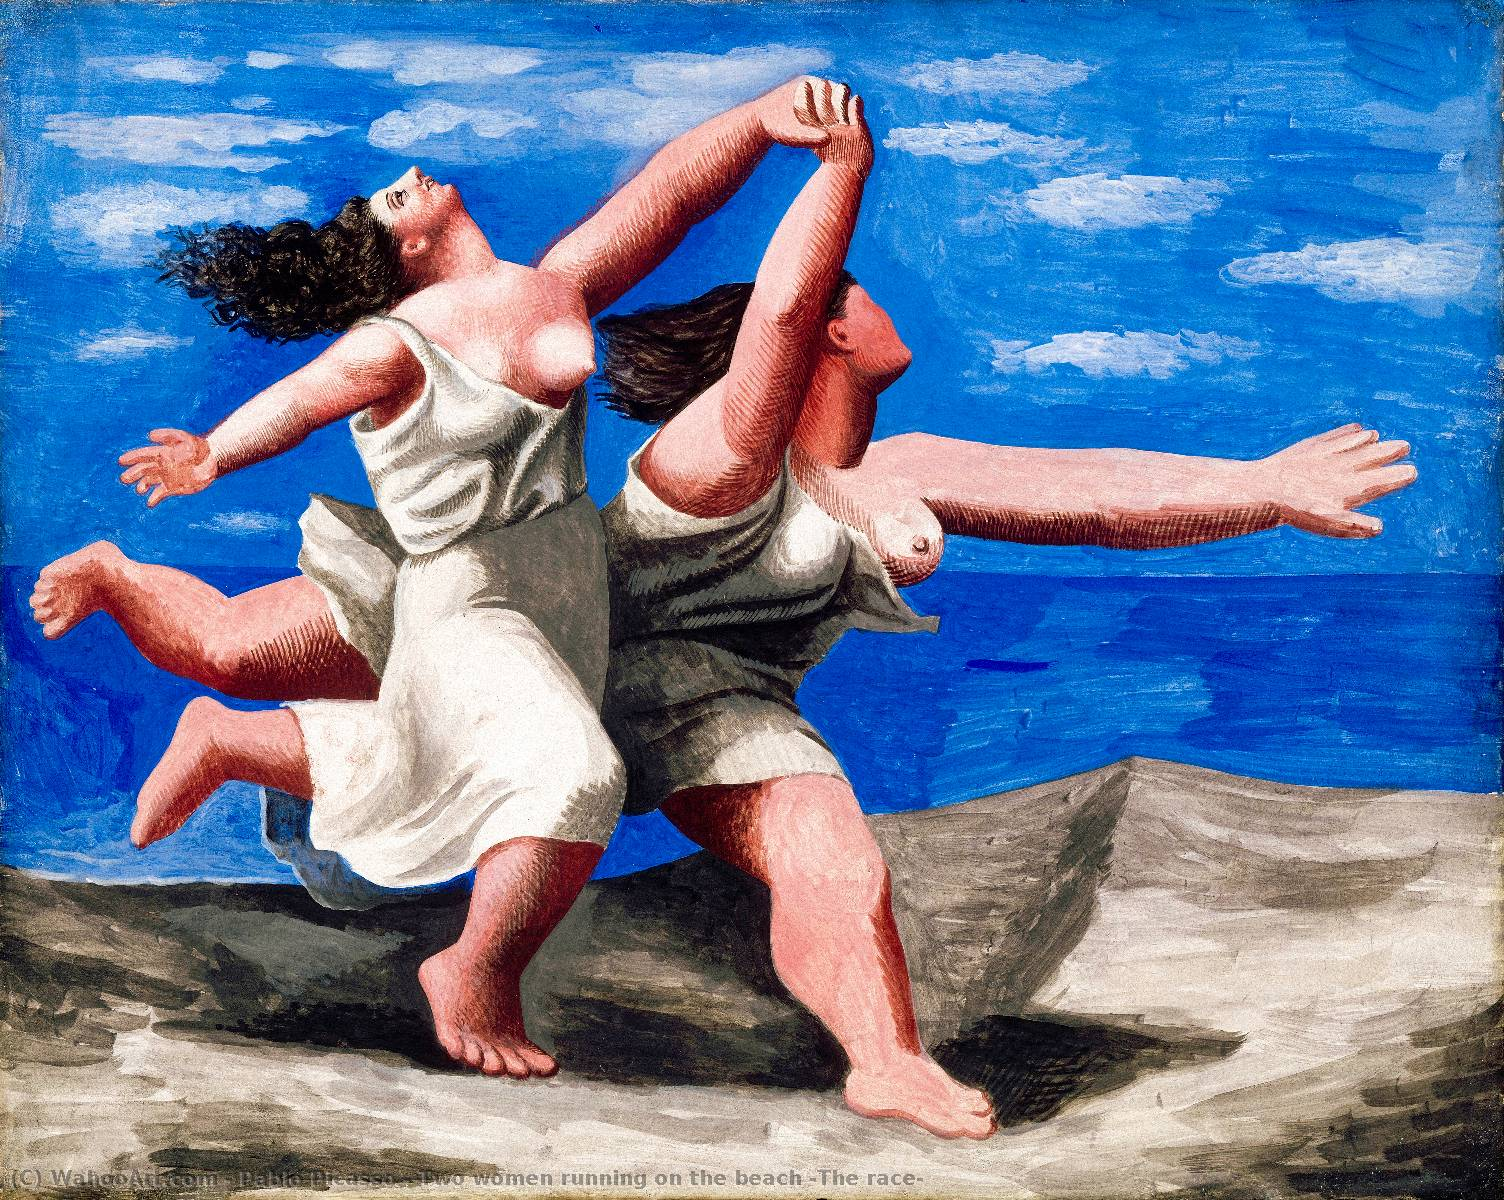 Two women running on the beach (The race), 1922 by Pablo Picasso (1881-1973, Spain) | Famous Paintings Reproductions | WahooArt.com